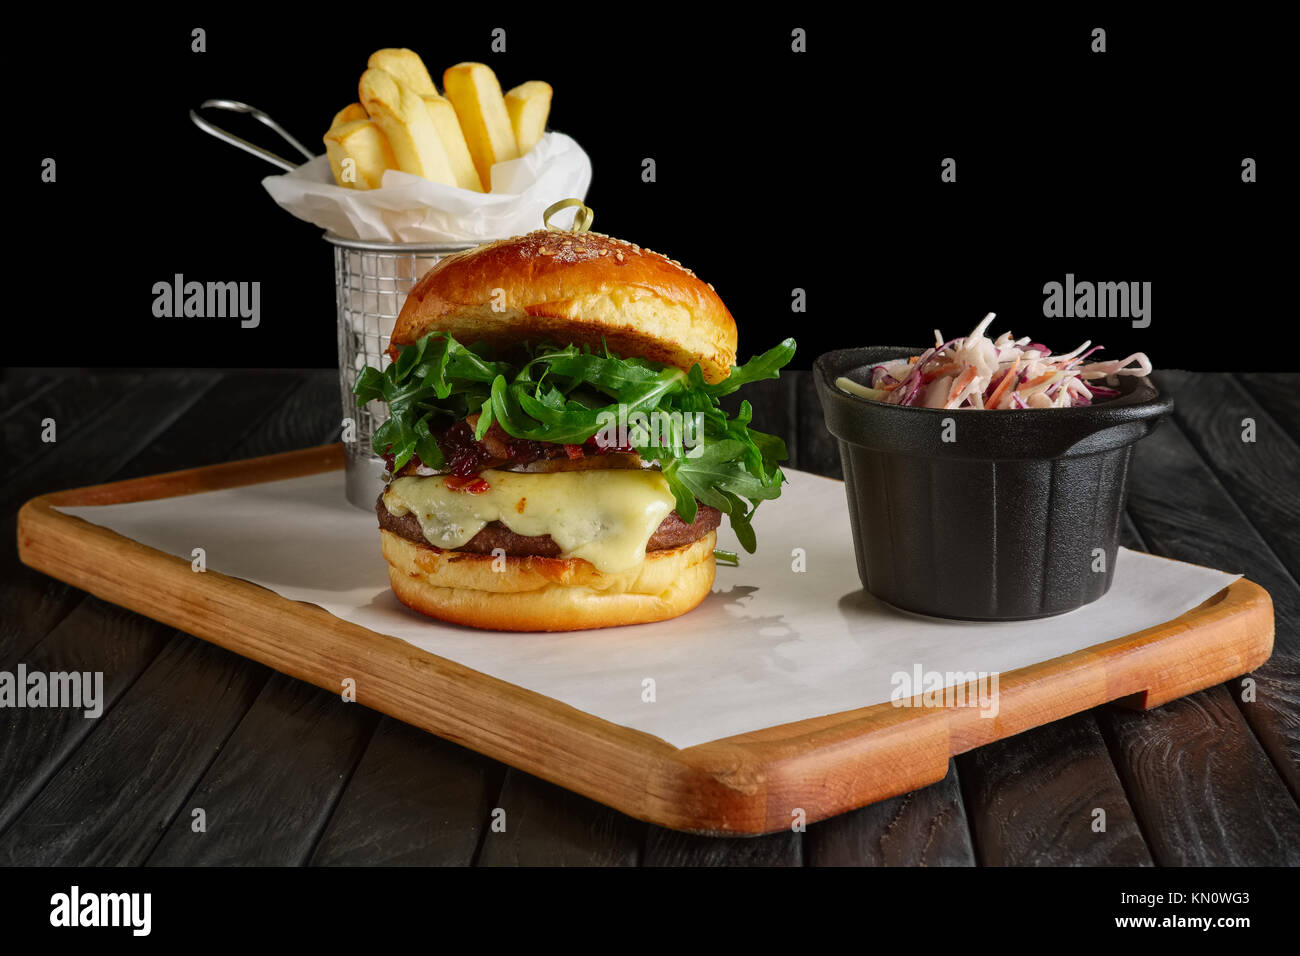 Juicy beef burger with lingonberry sauce, melted cheese, arugula served with fried potato and red cabbage - Stock Image